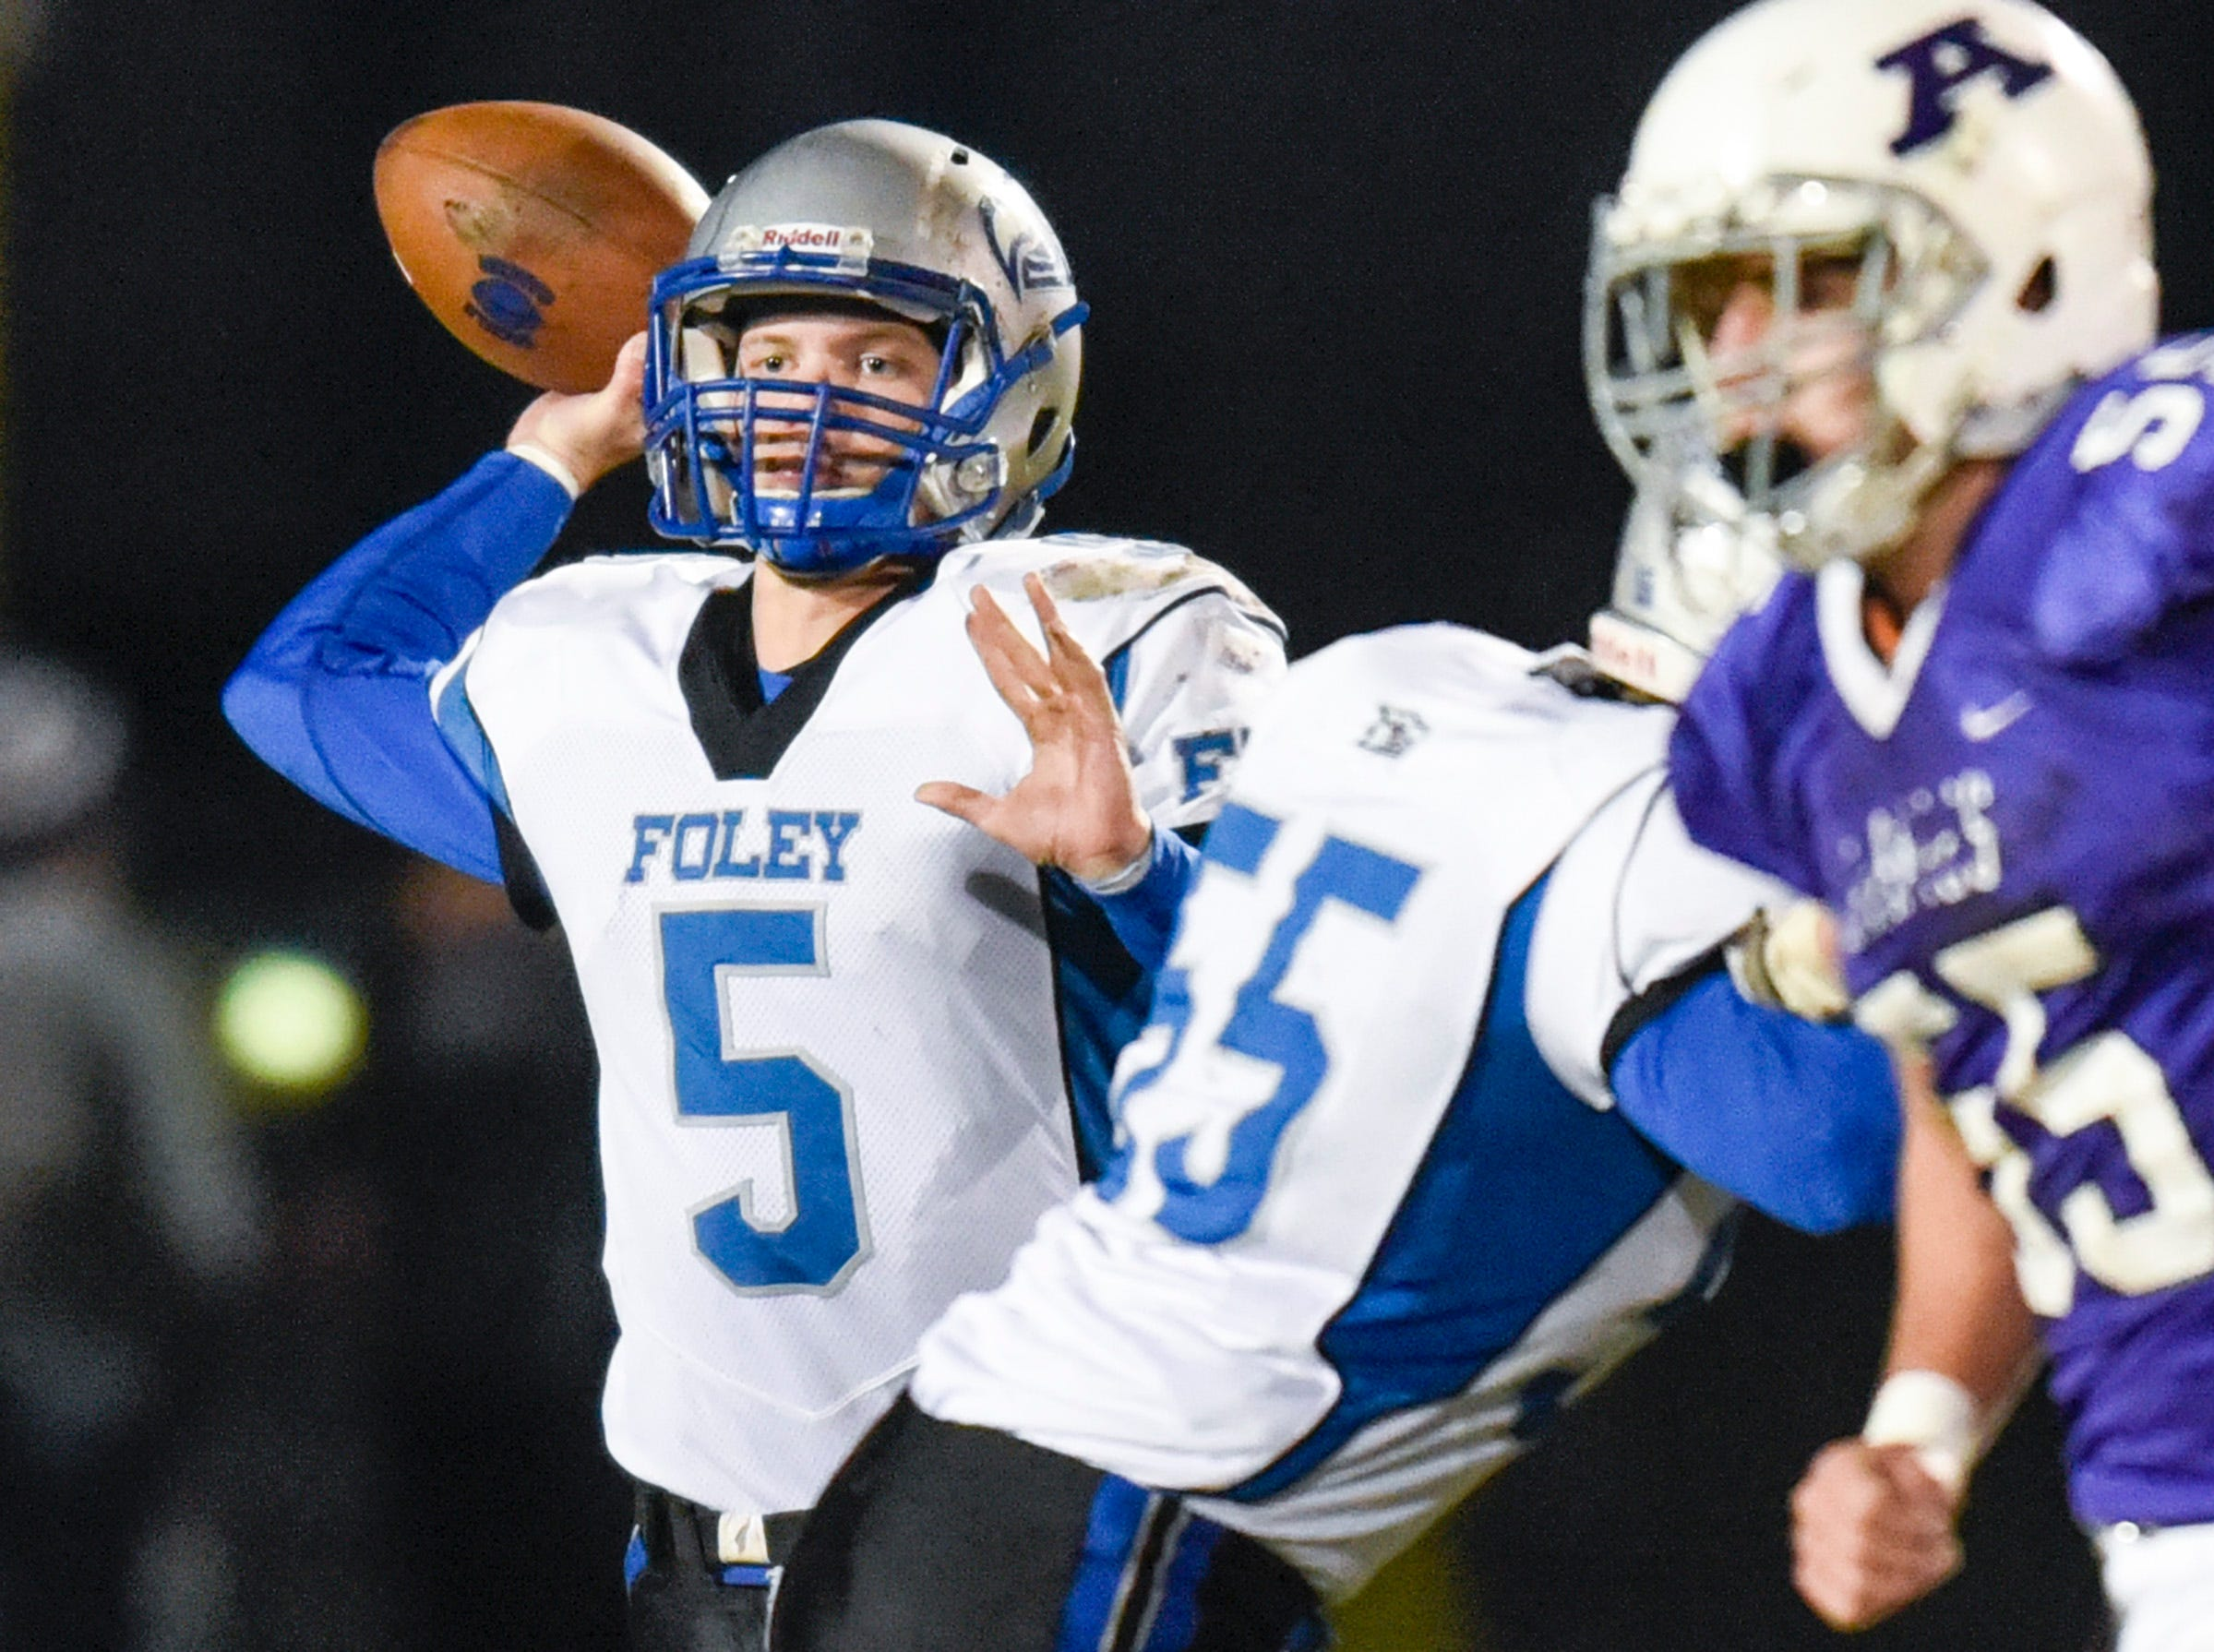 Foley quarterback Alex Foss throws a pass against Albany during the first half Friday, Oct. 12, in Albany.